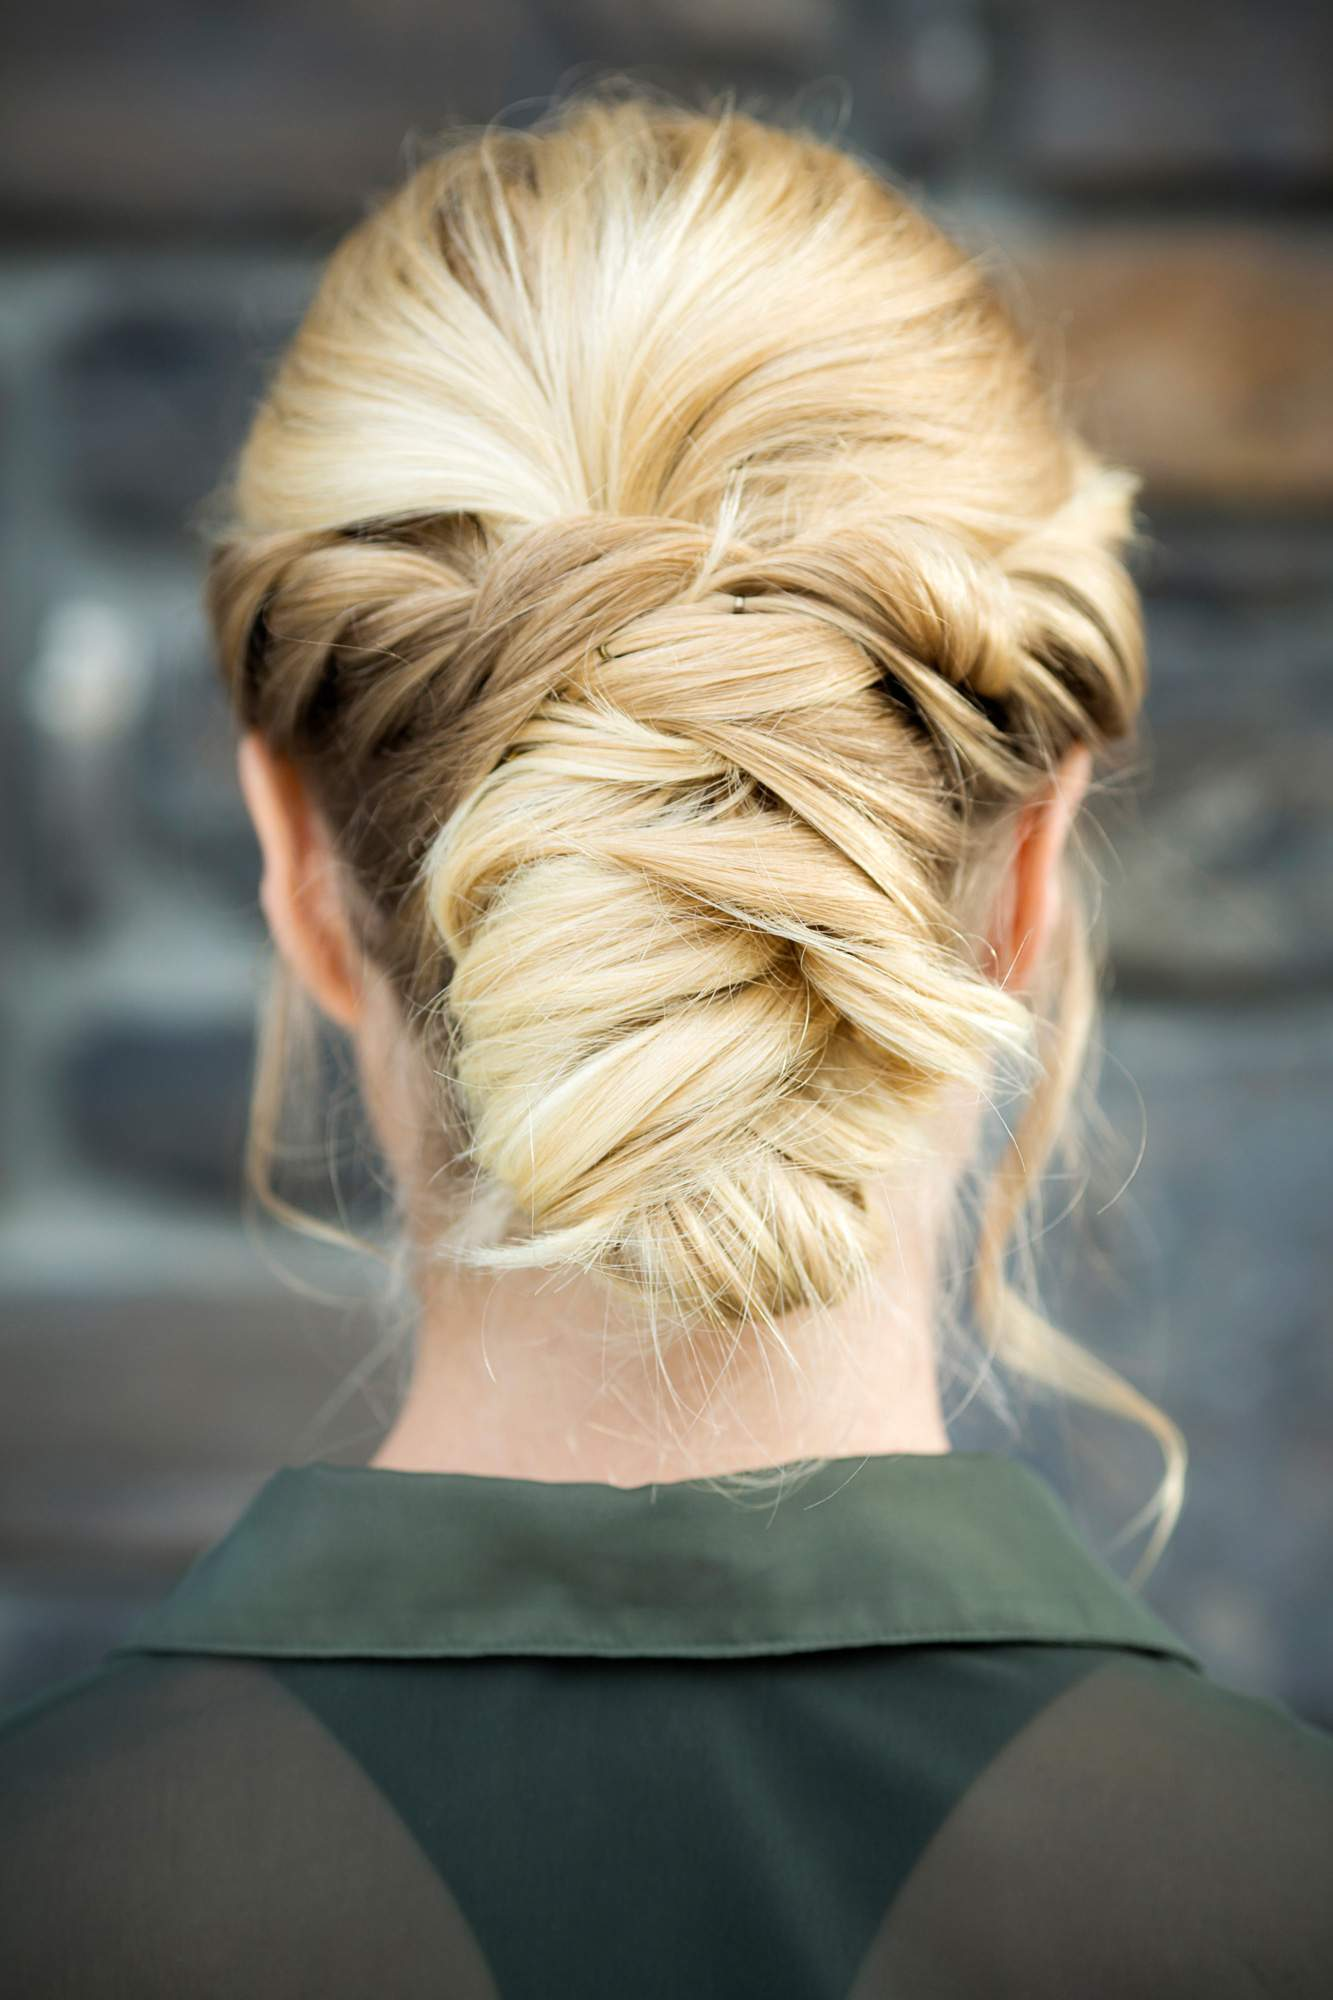 Updo's - Hair Salon Services - Rapunzel Salon & Spa - Canmore